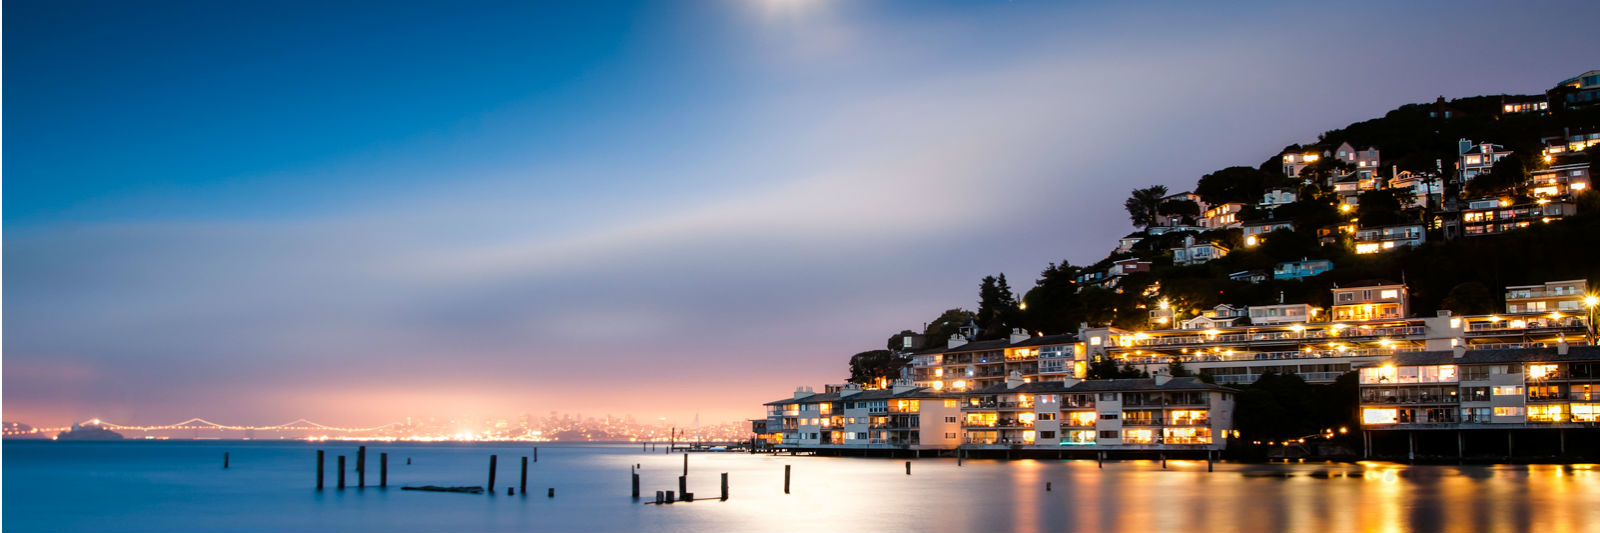 sausalito-moonrise-.jpg